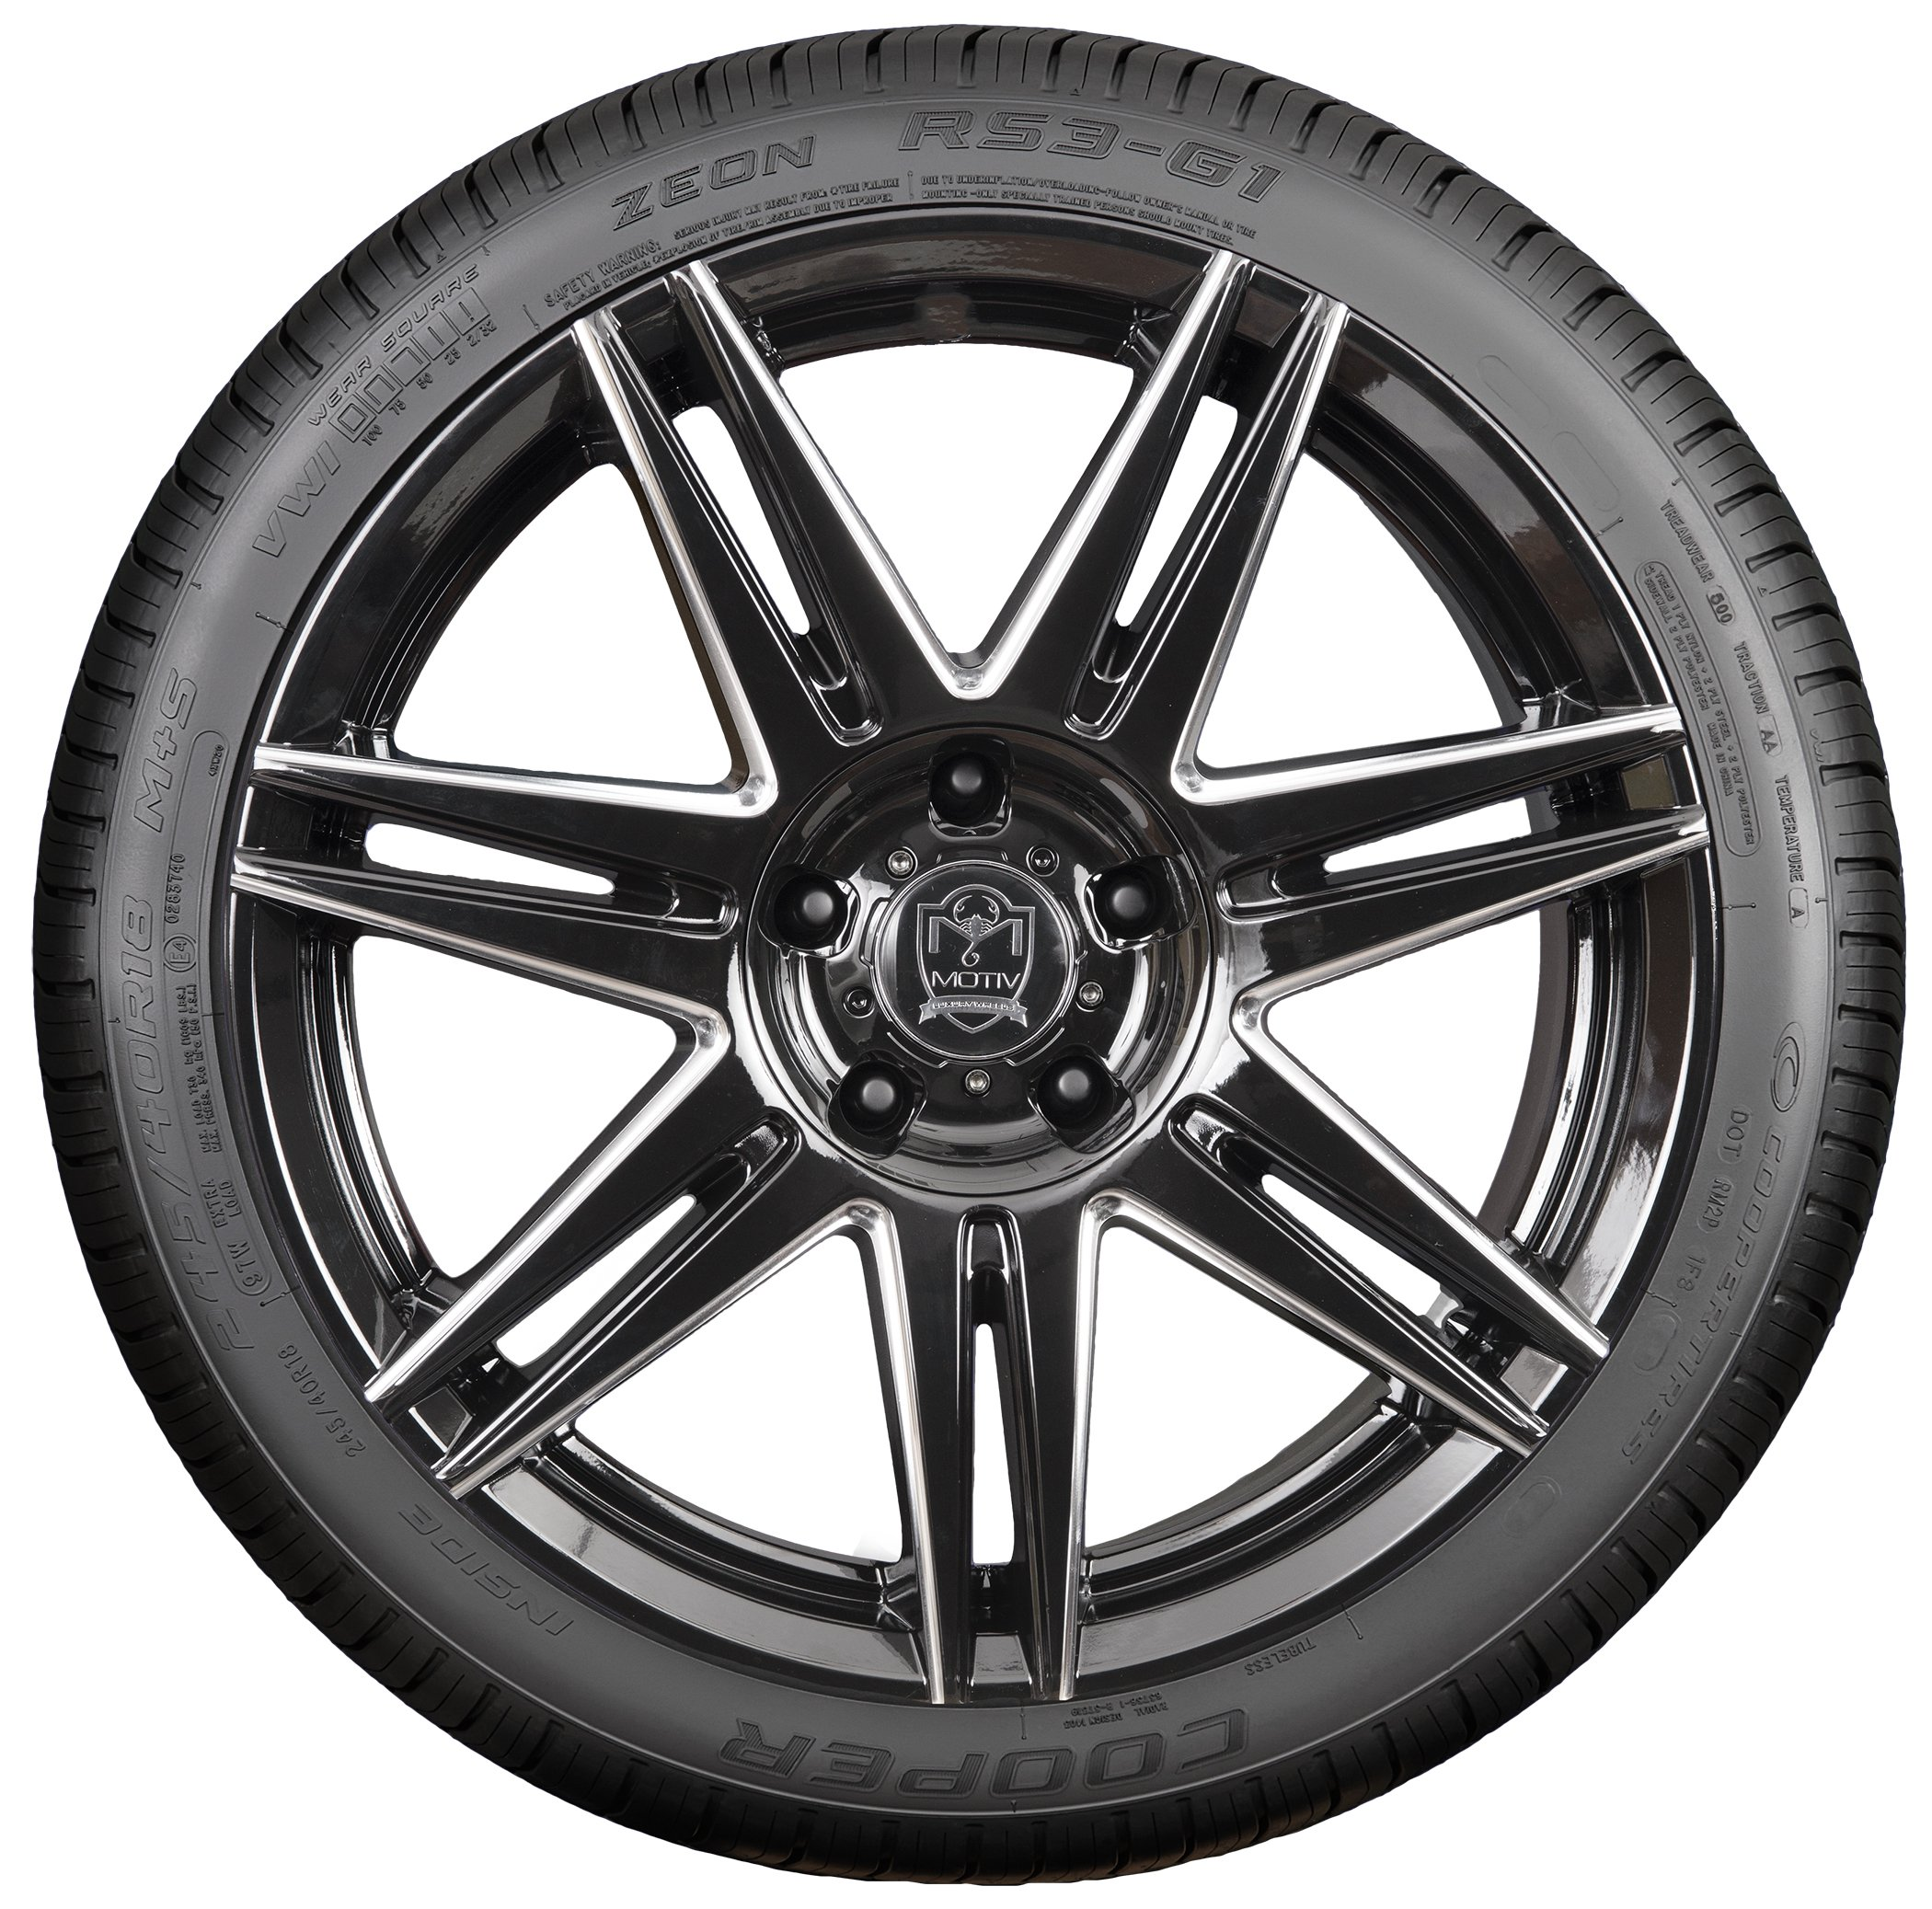 Cooper Tires Zeon RS3-G1 Performance Radial Tire - 215/45R17 91W by Cooper Tire (Image #2)